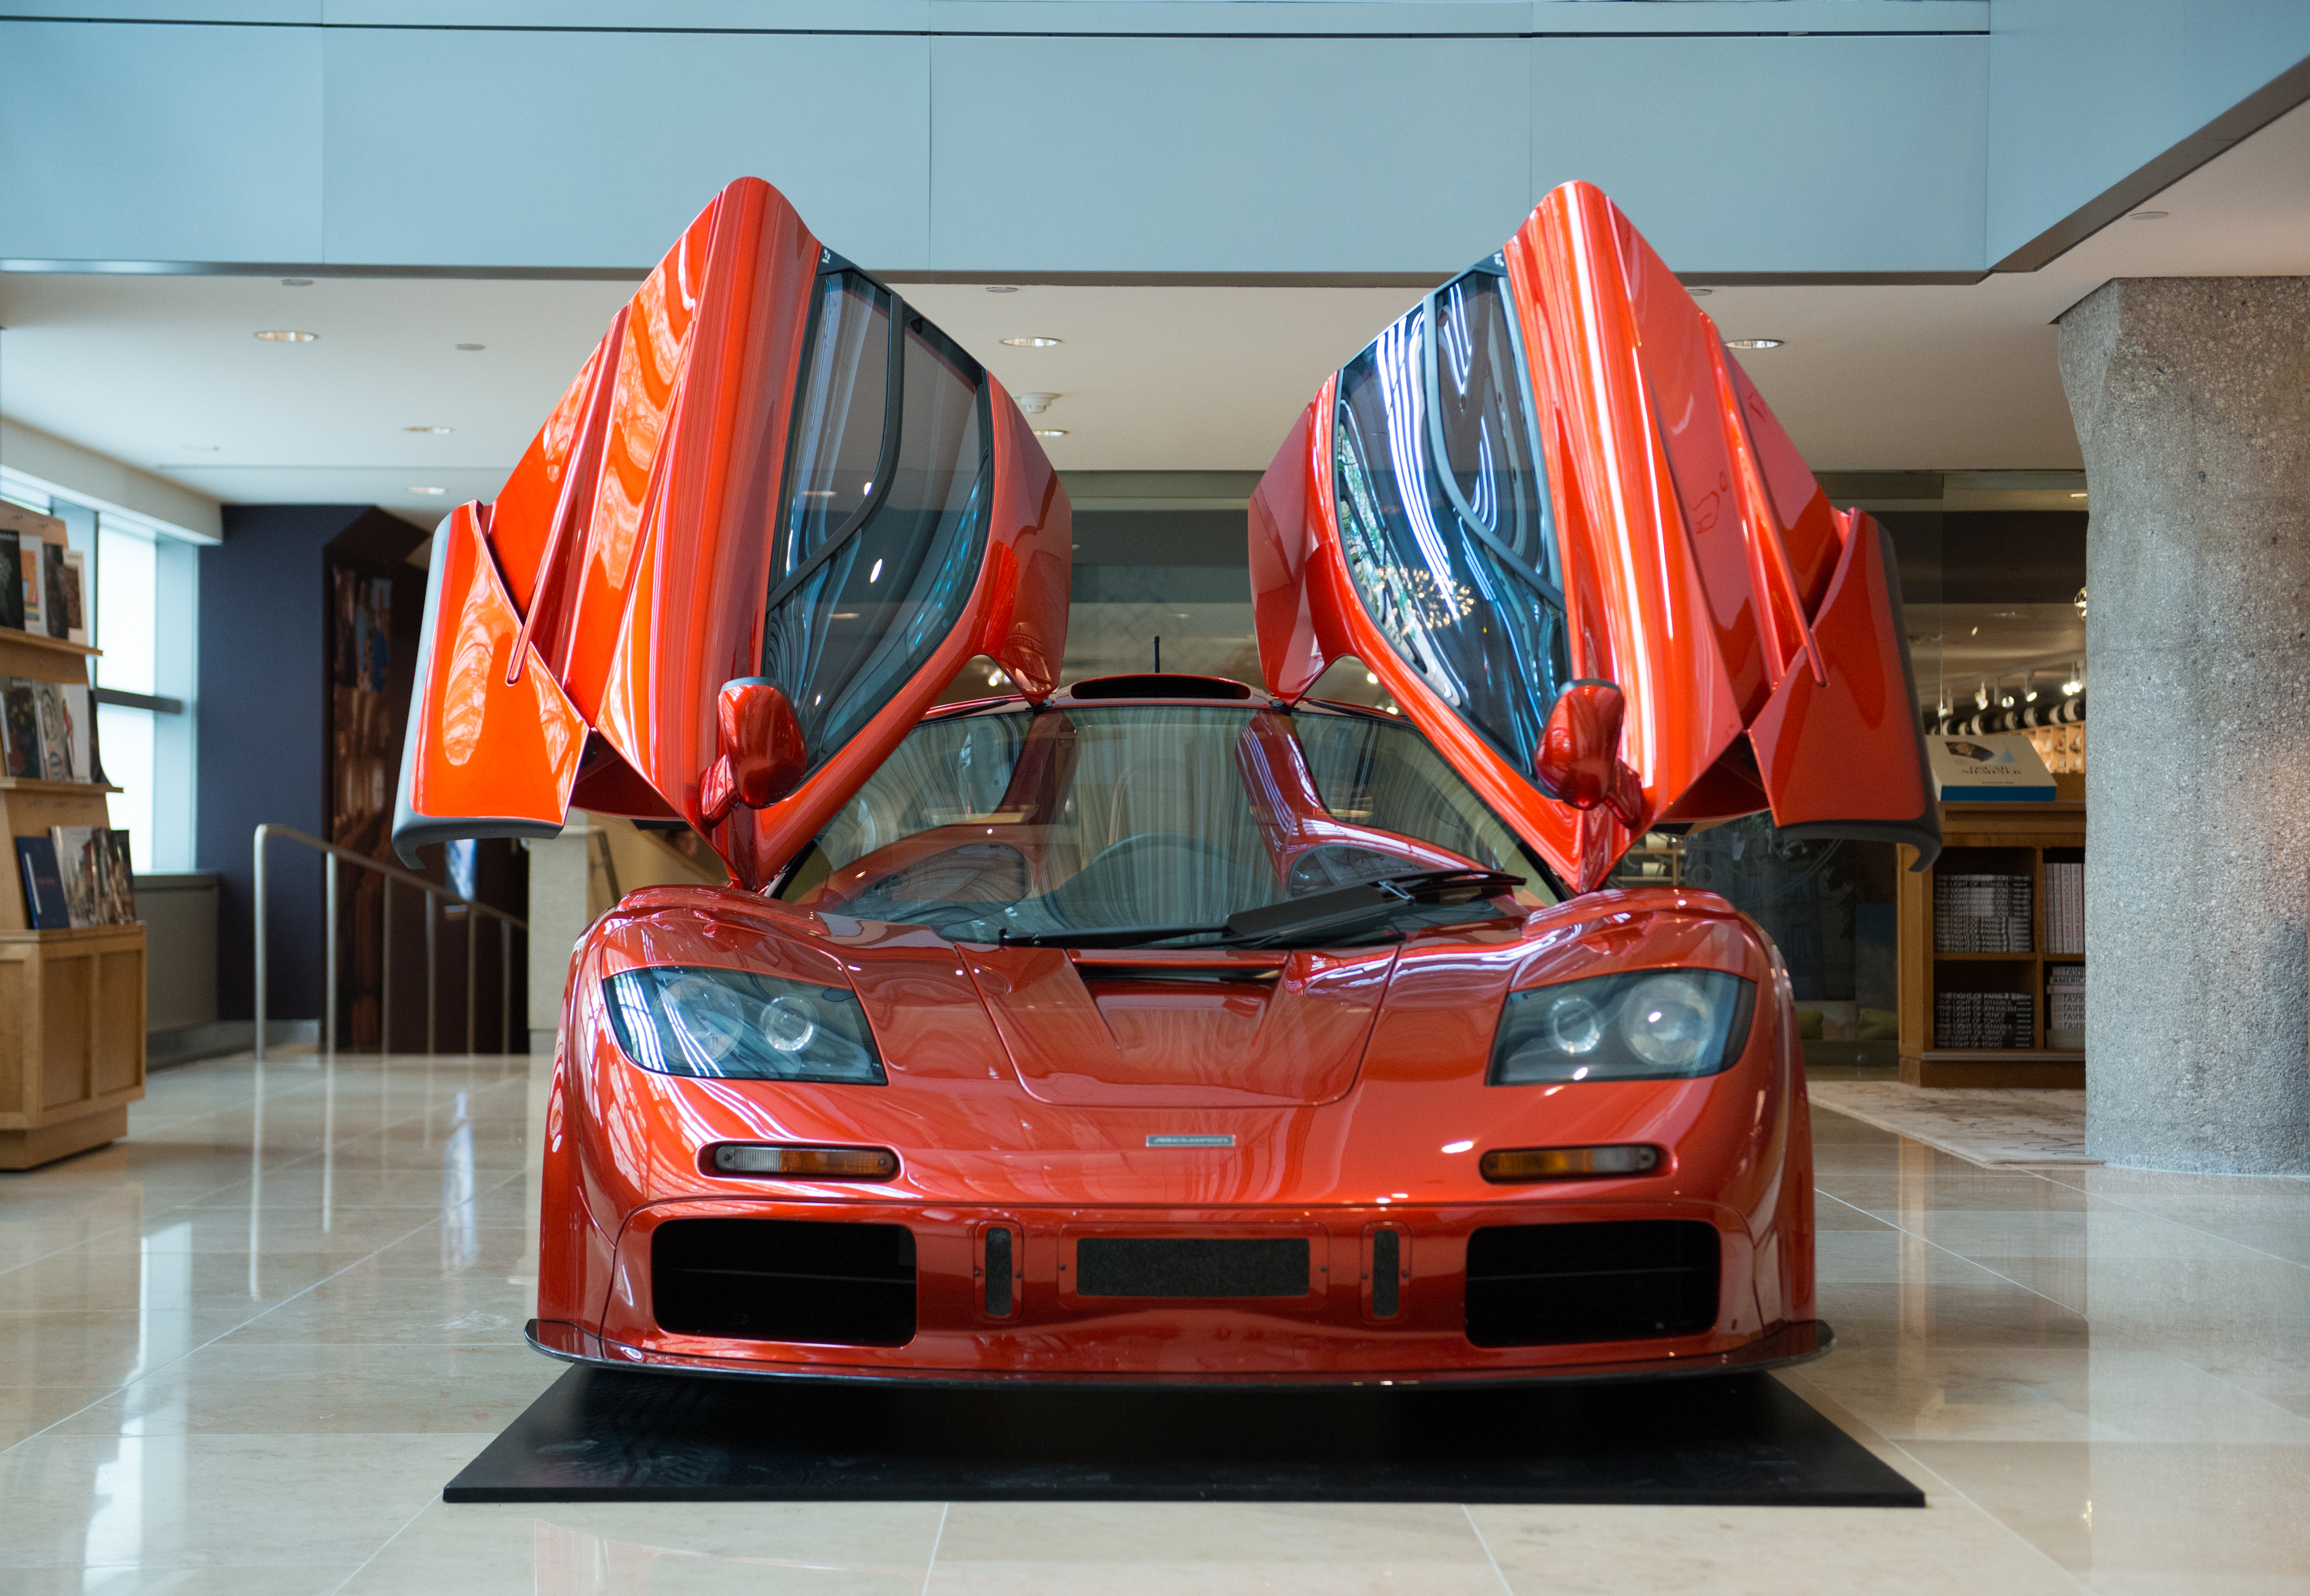 General view of the 1998 McLaren F1 'LM-Specification' supercar during McLaren's F1 New York media preview at Sotheby's on June 3, 2015 in New York City.